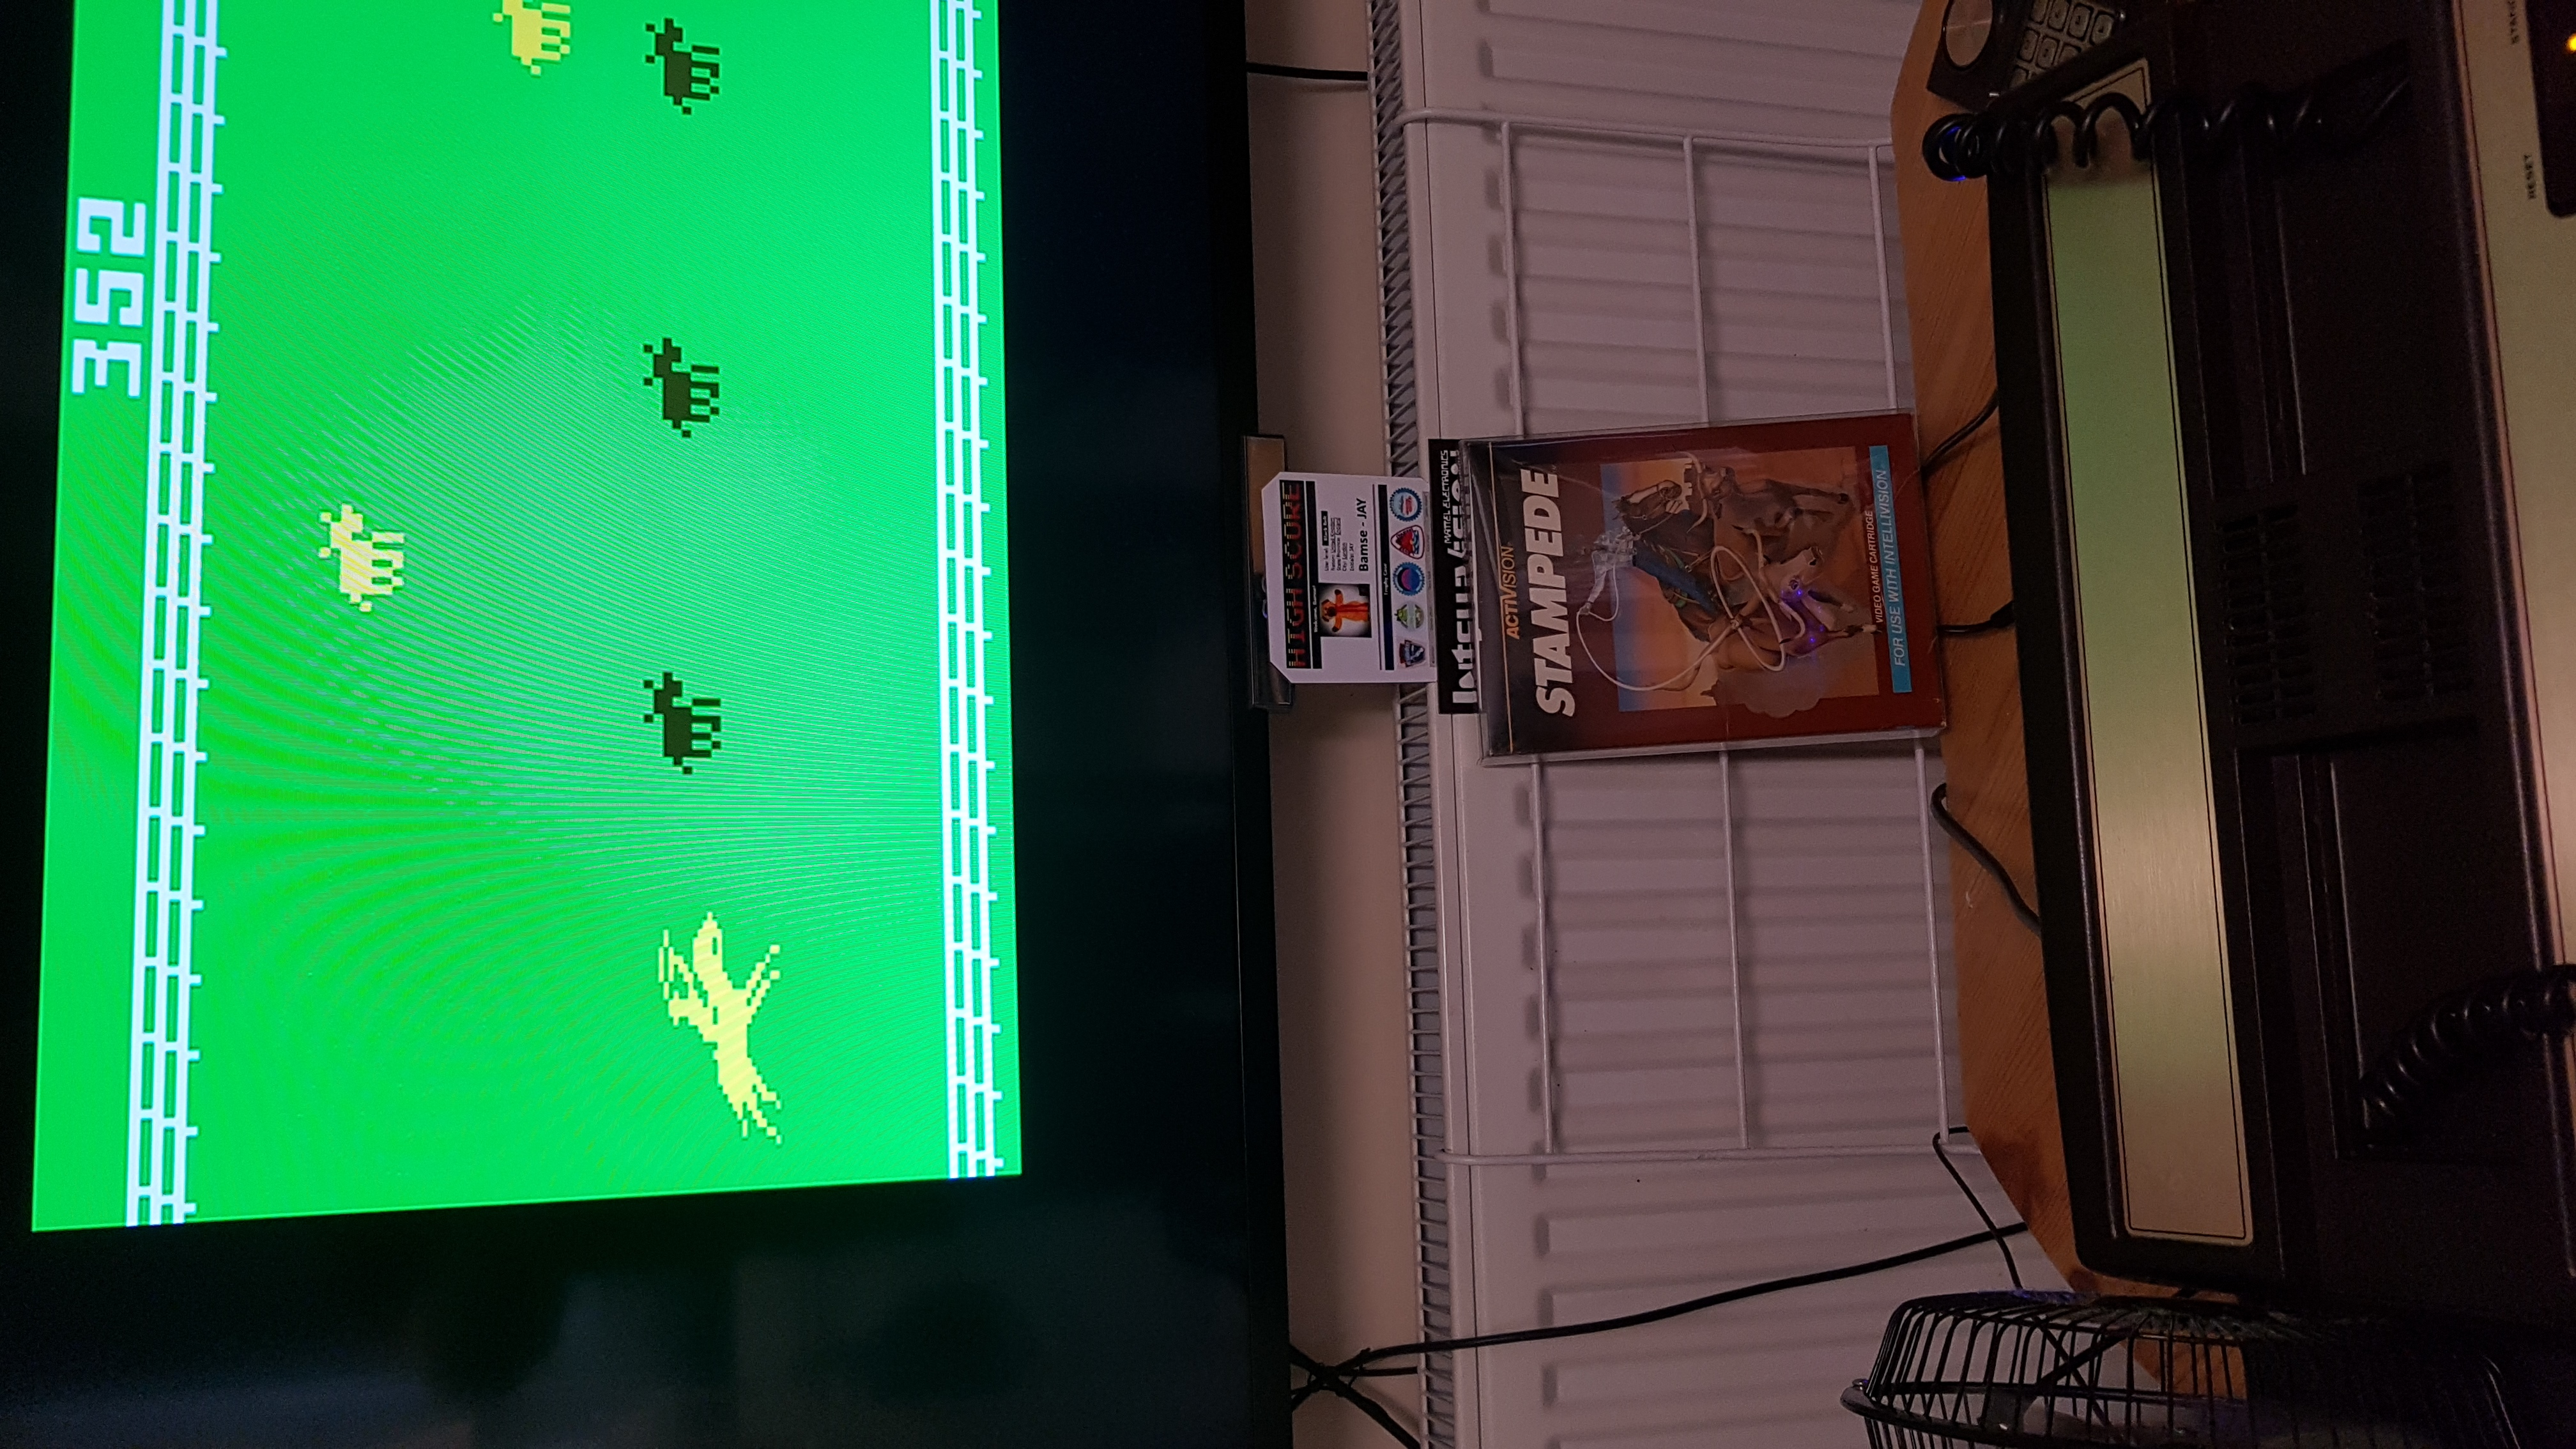 Bamse: Stampede: Select 4 (Intellivision) 352 points on 2019-08-17 07:02:19